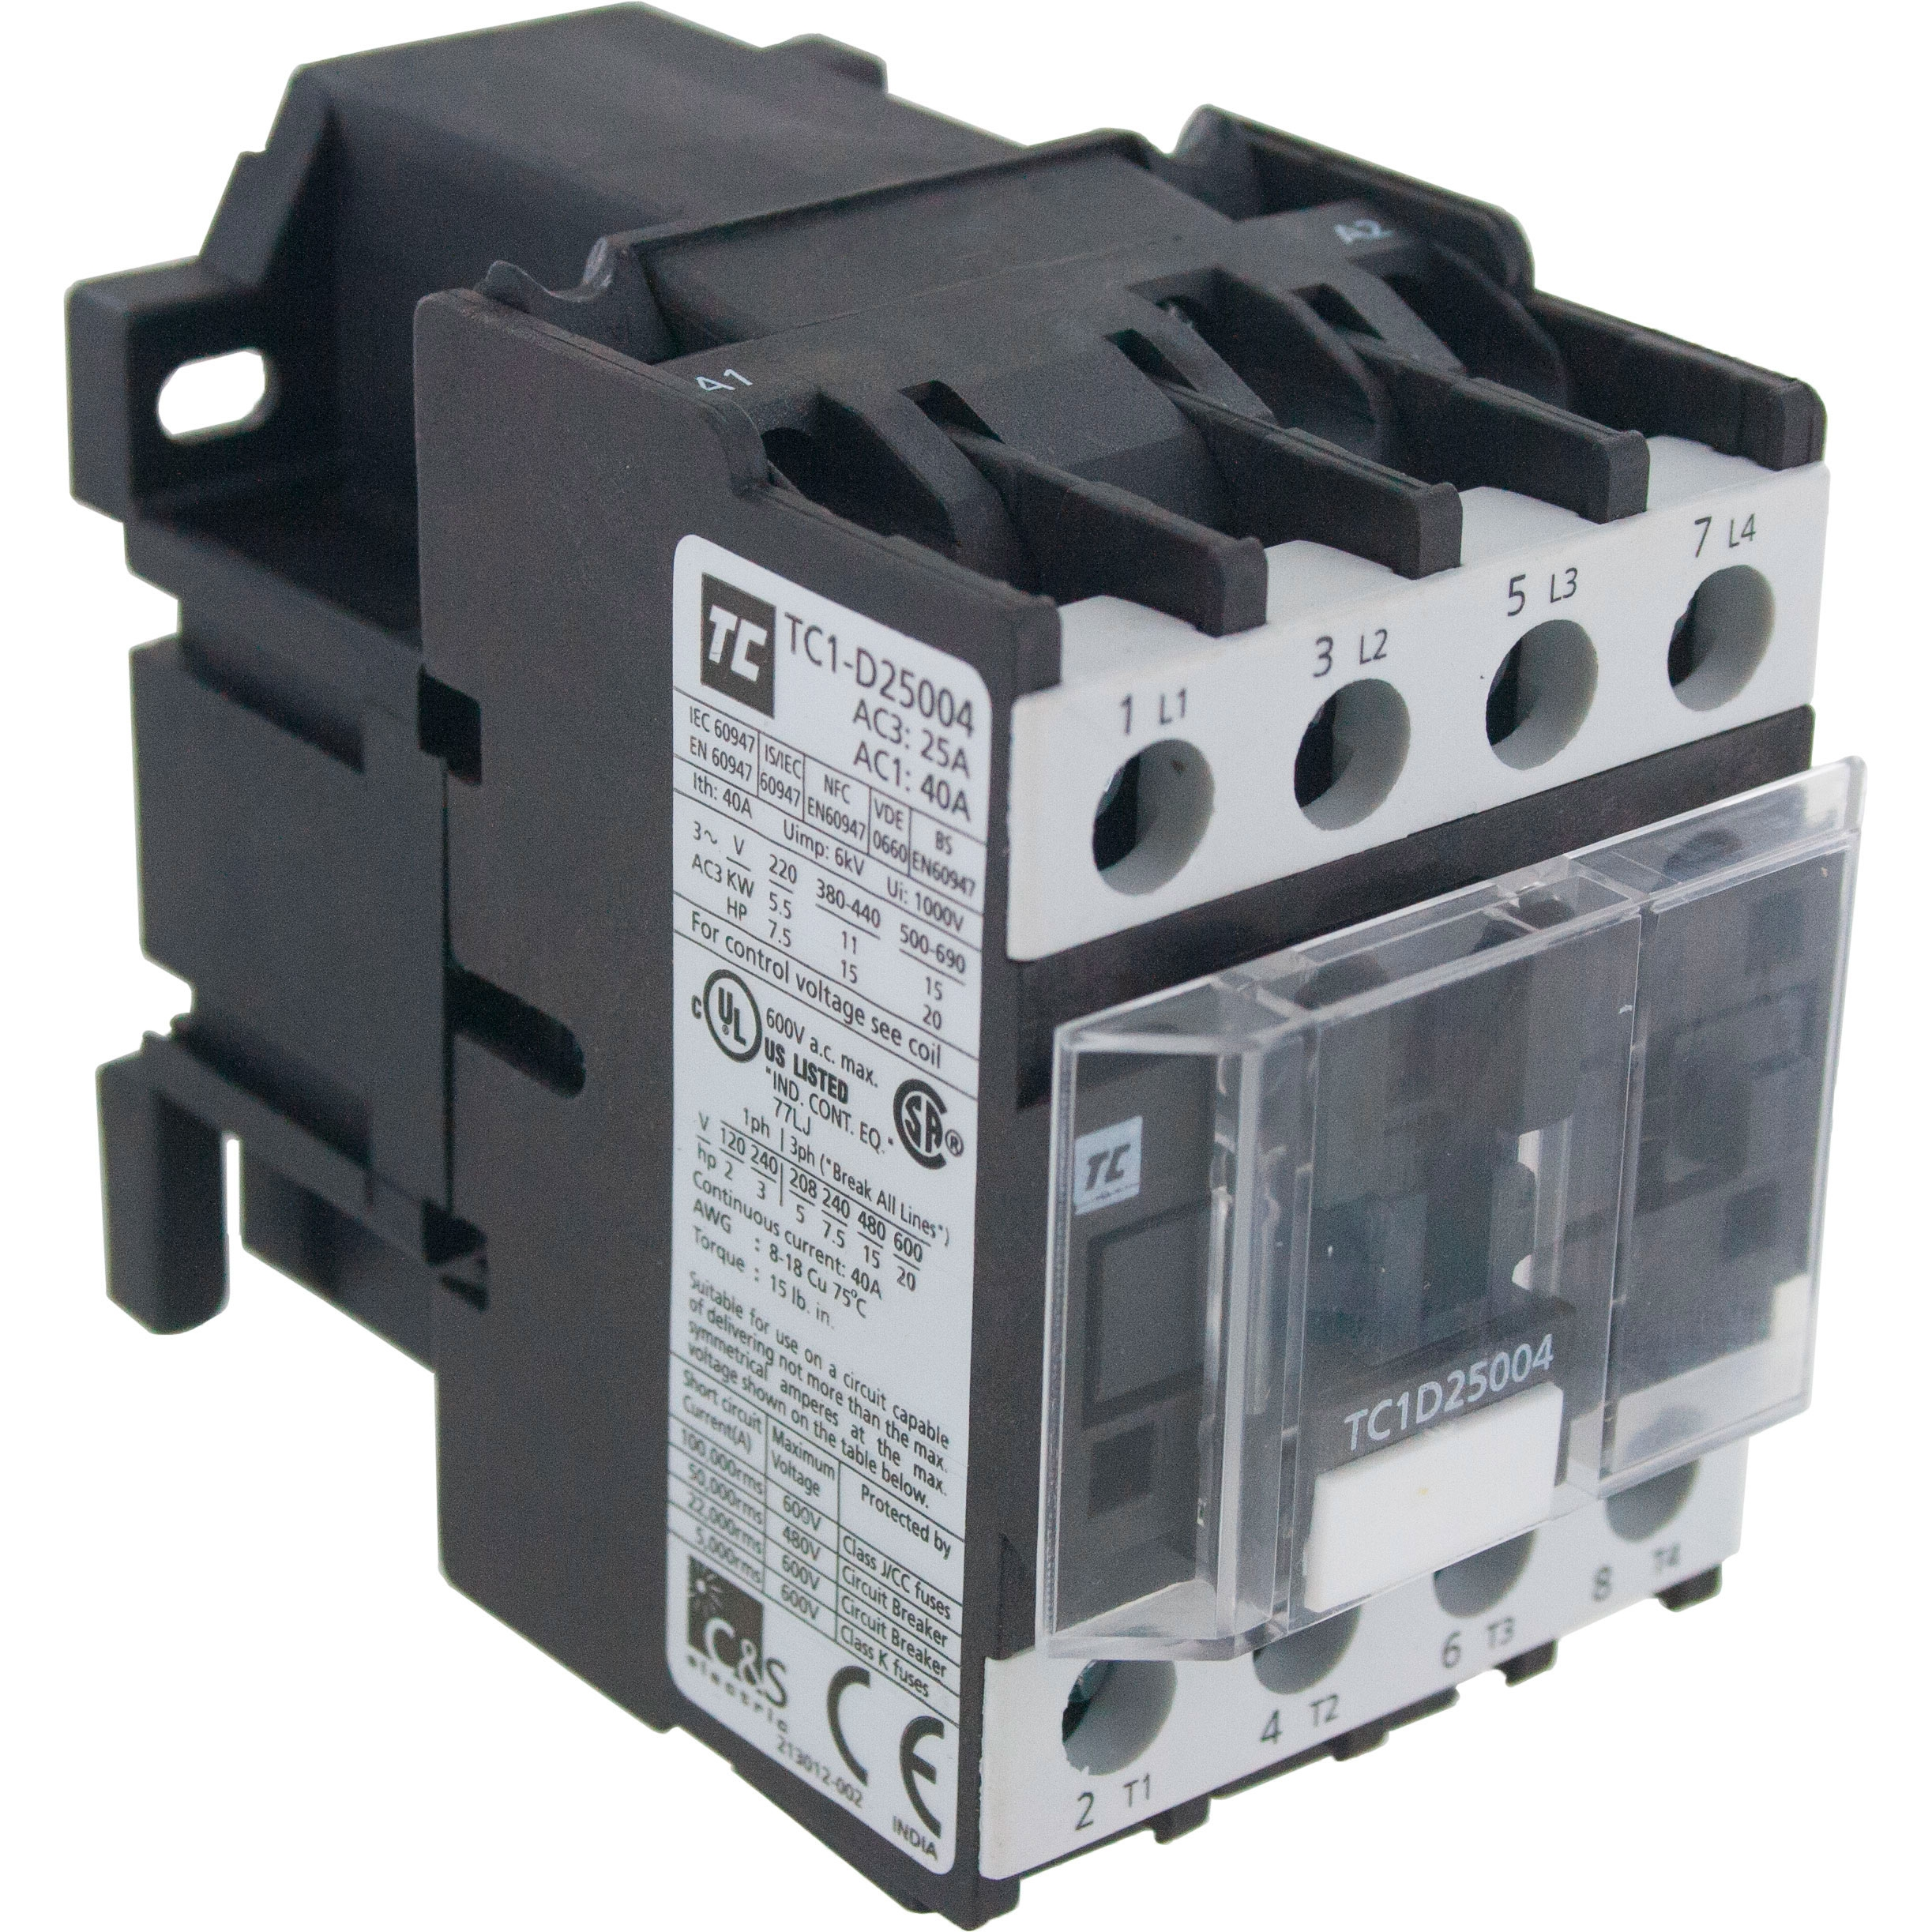 non grounding 3 phase contactor wiring wiring diagrams control 3 Phase Meter Wiring non grounding 3 phase contactor wiring all wiring diagram 3 phase reversing contactor wiring diagram 4